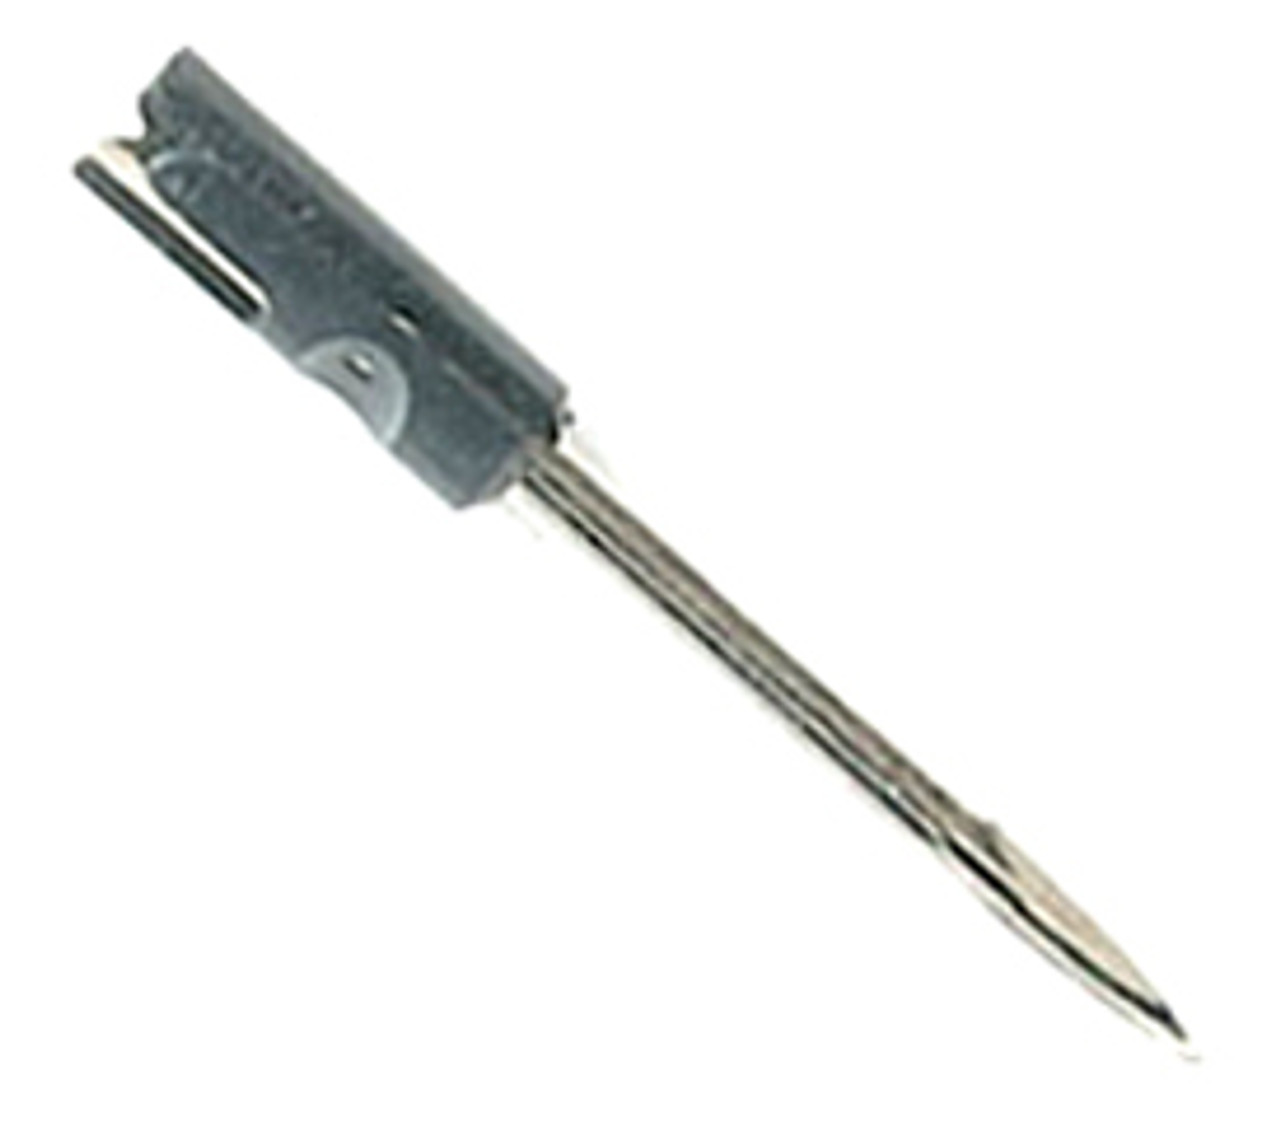 Reliable-Factory-Supply-Dennison-Needles Standard